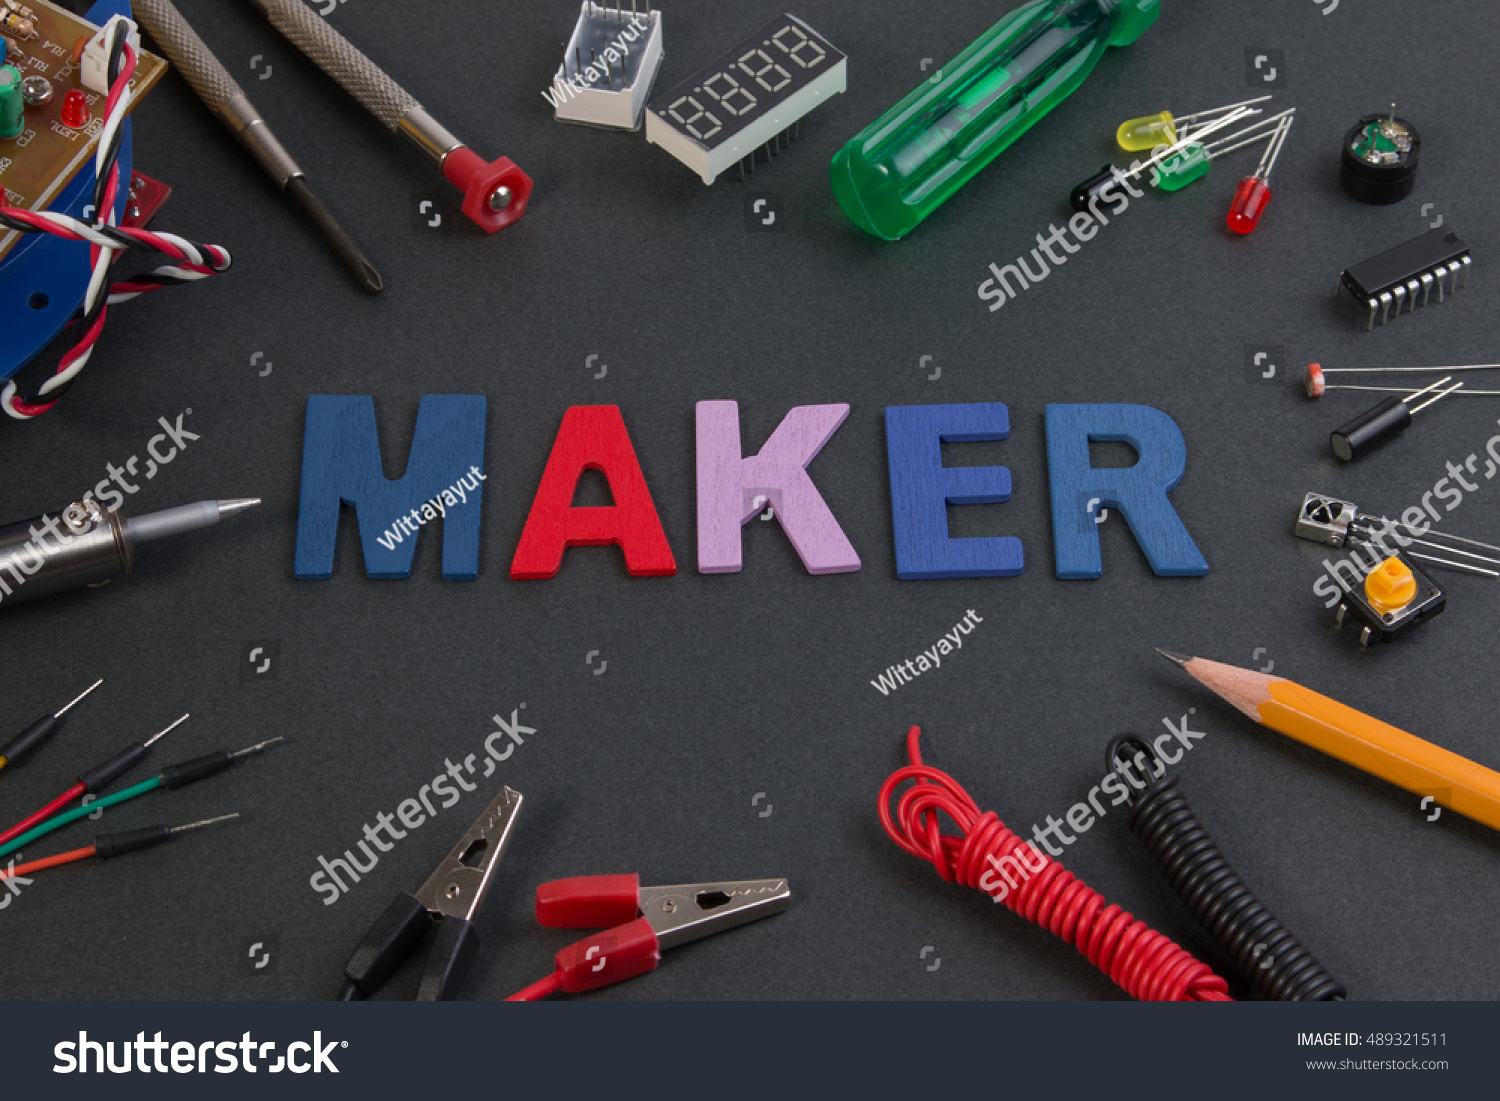 Particle Maker Kit Electronics Project Stock Photo Edit Now Circuits Kits On Black Table